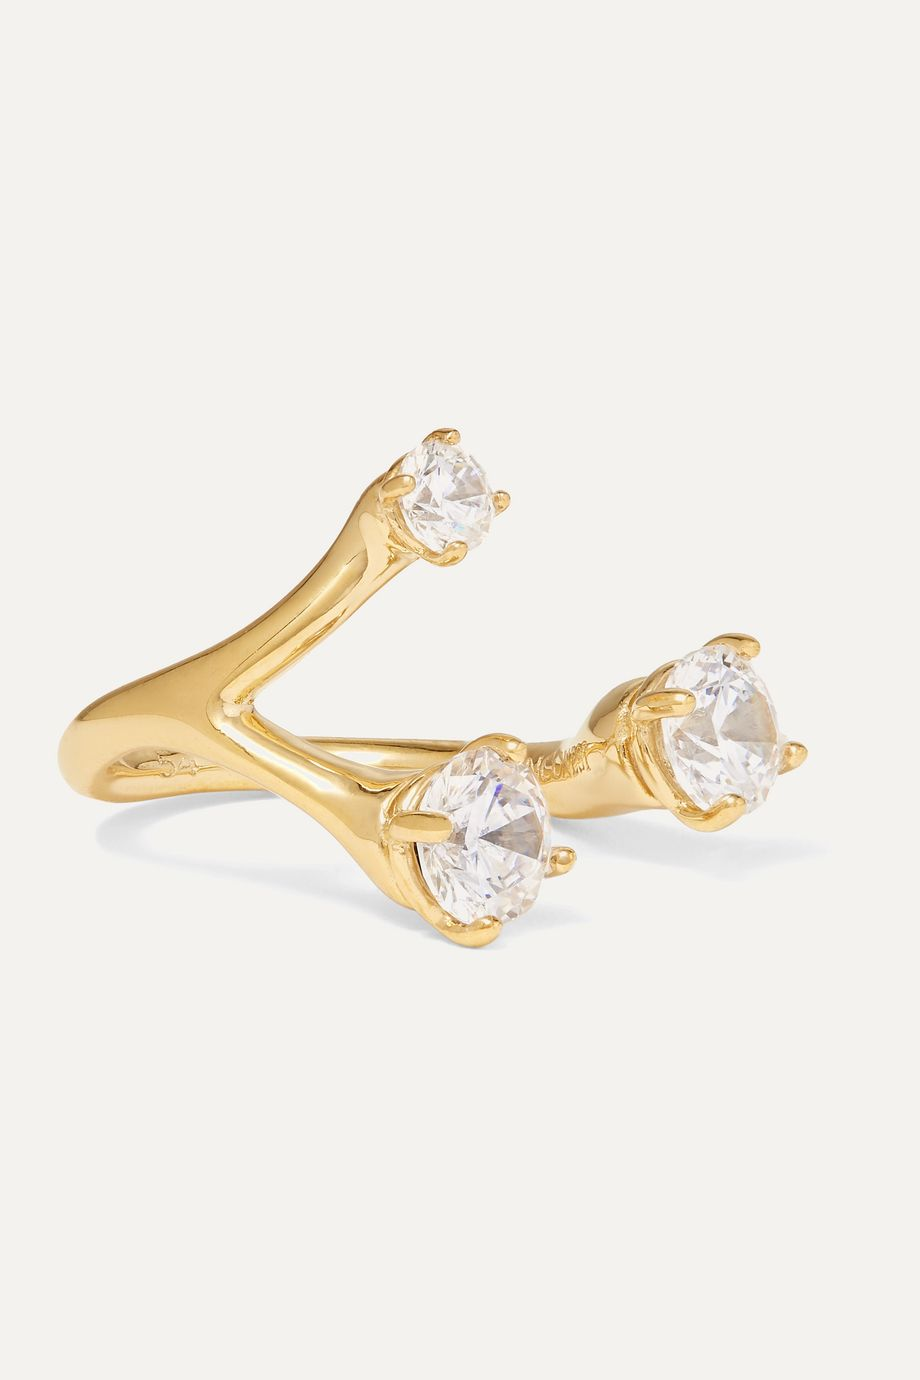 Panconesi Constellation Trinity gold-plated crystal ring